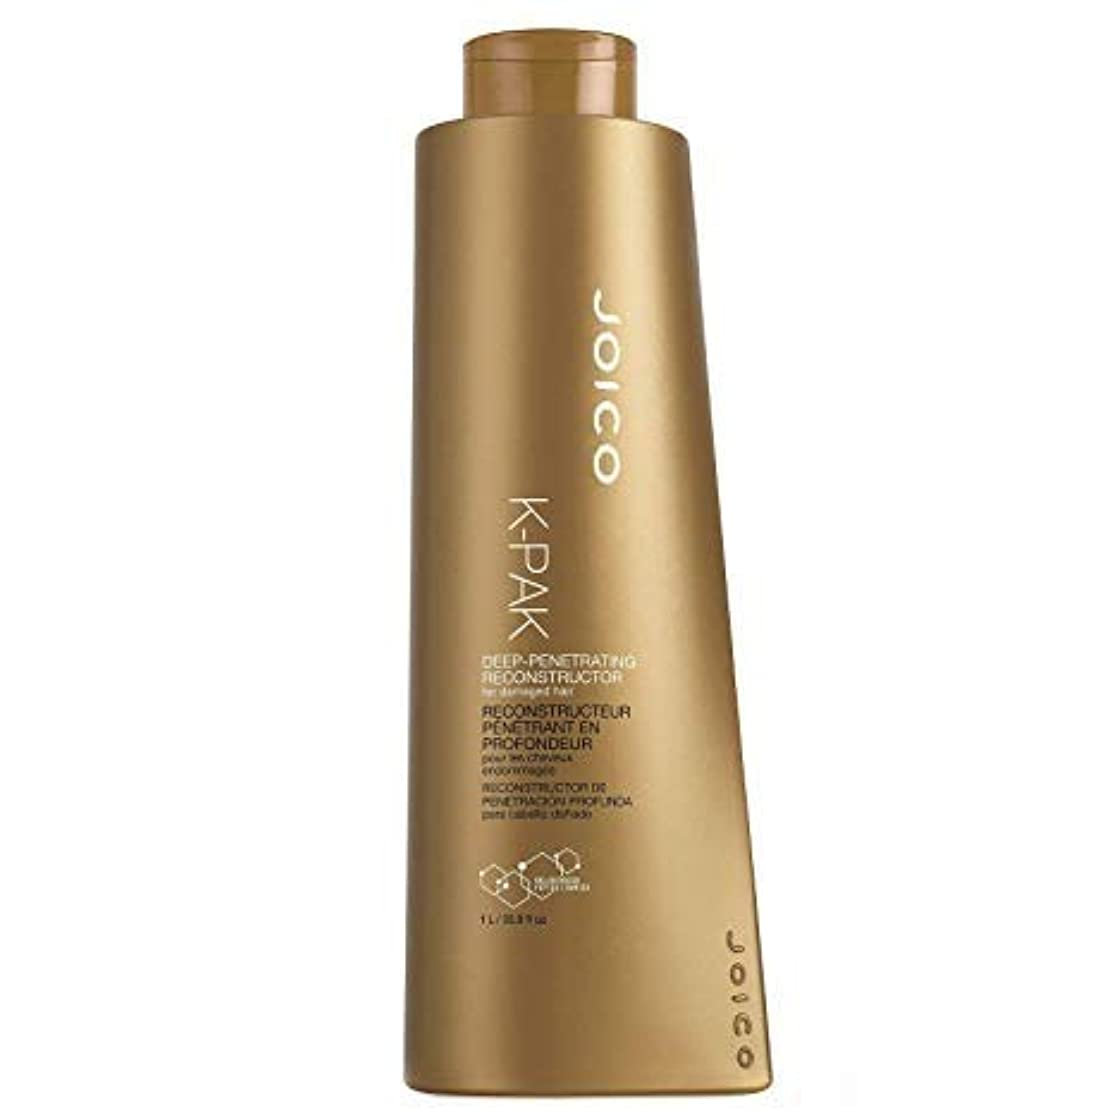 川本能ホイールジョイコ K-Pak Deep-Penetrating Reconstructor - For Damaged Hair (Cap) 1000ml/33.8oz並行輸入品